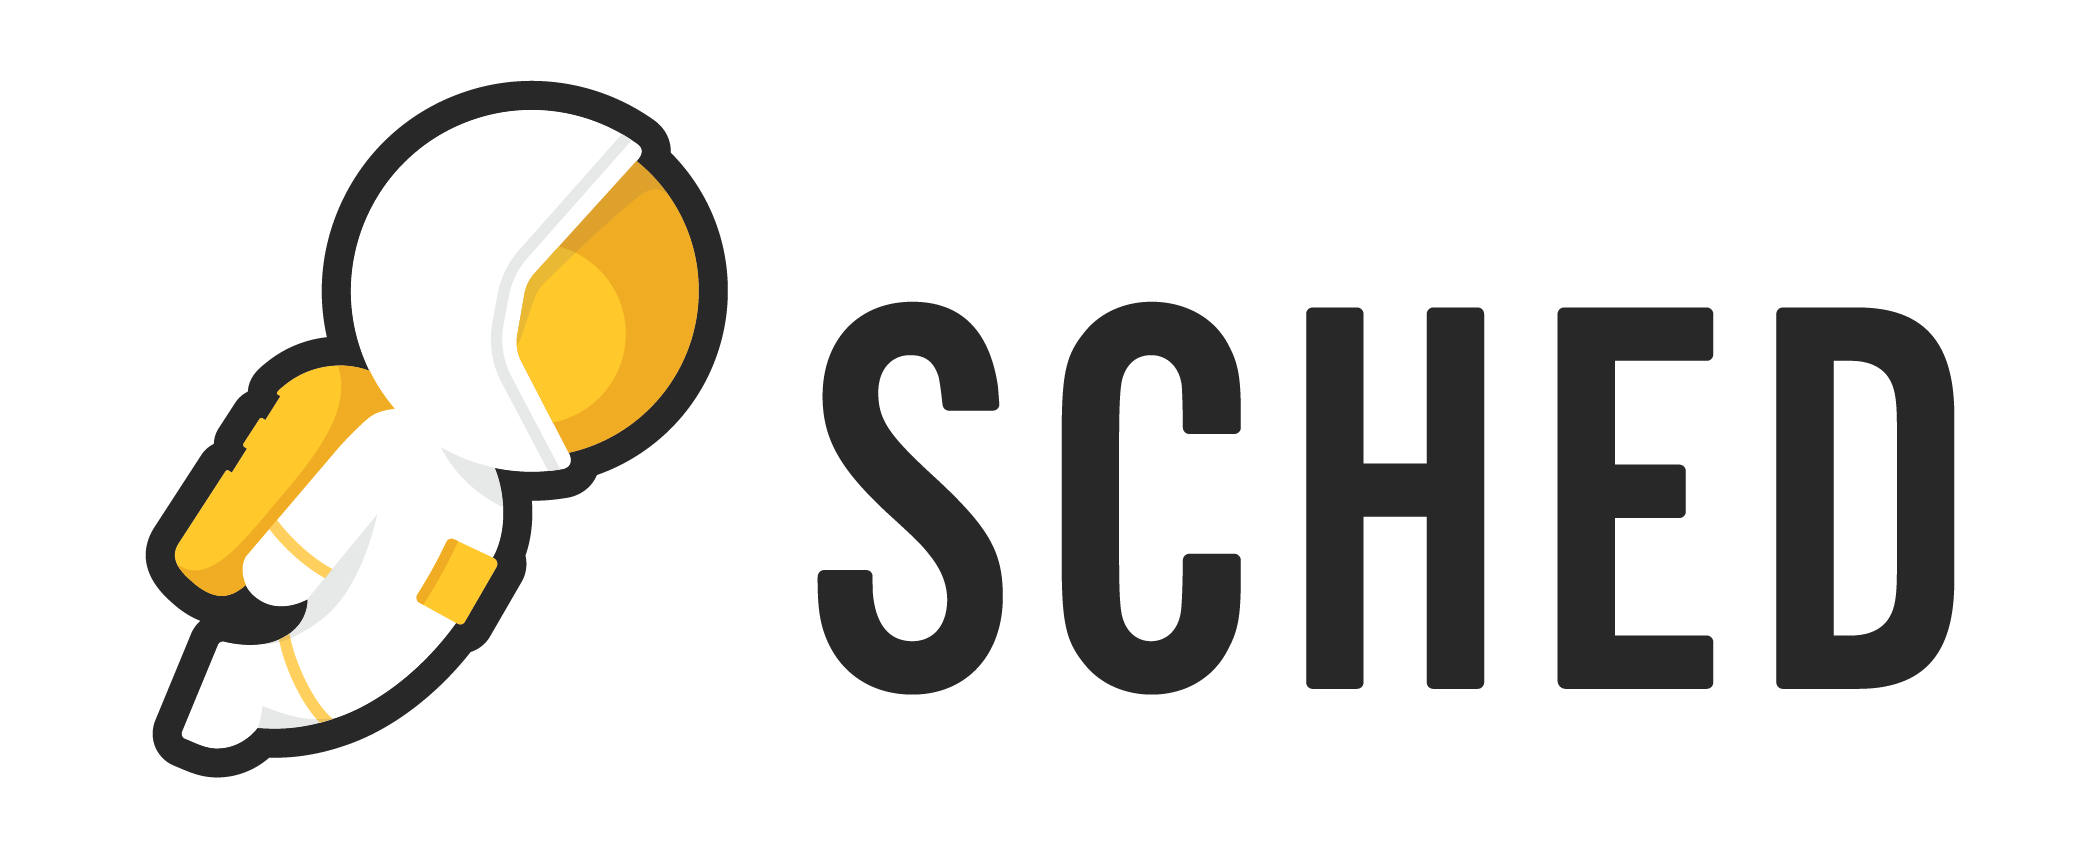 sched-logo-horizontal-color.png